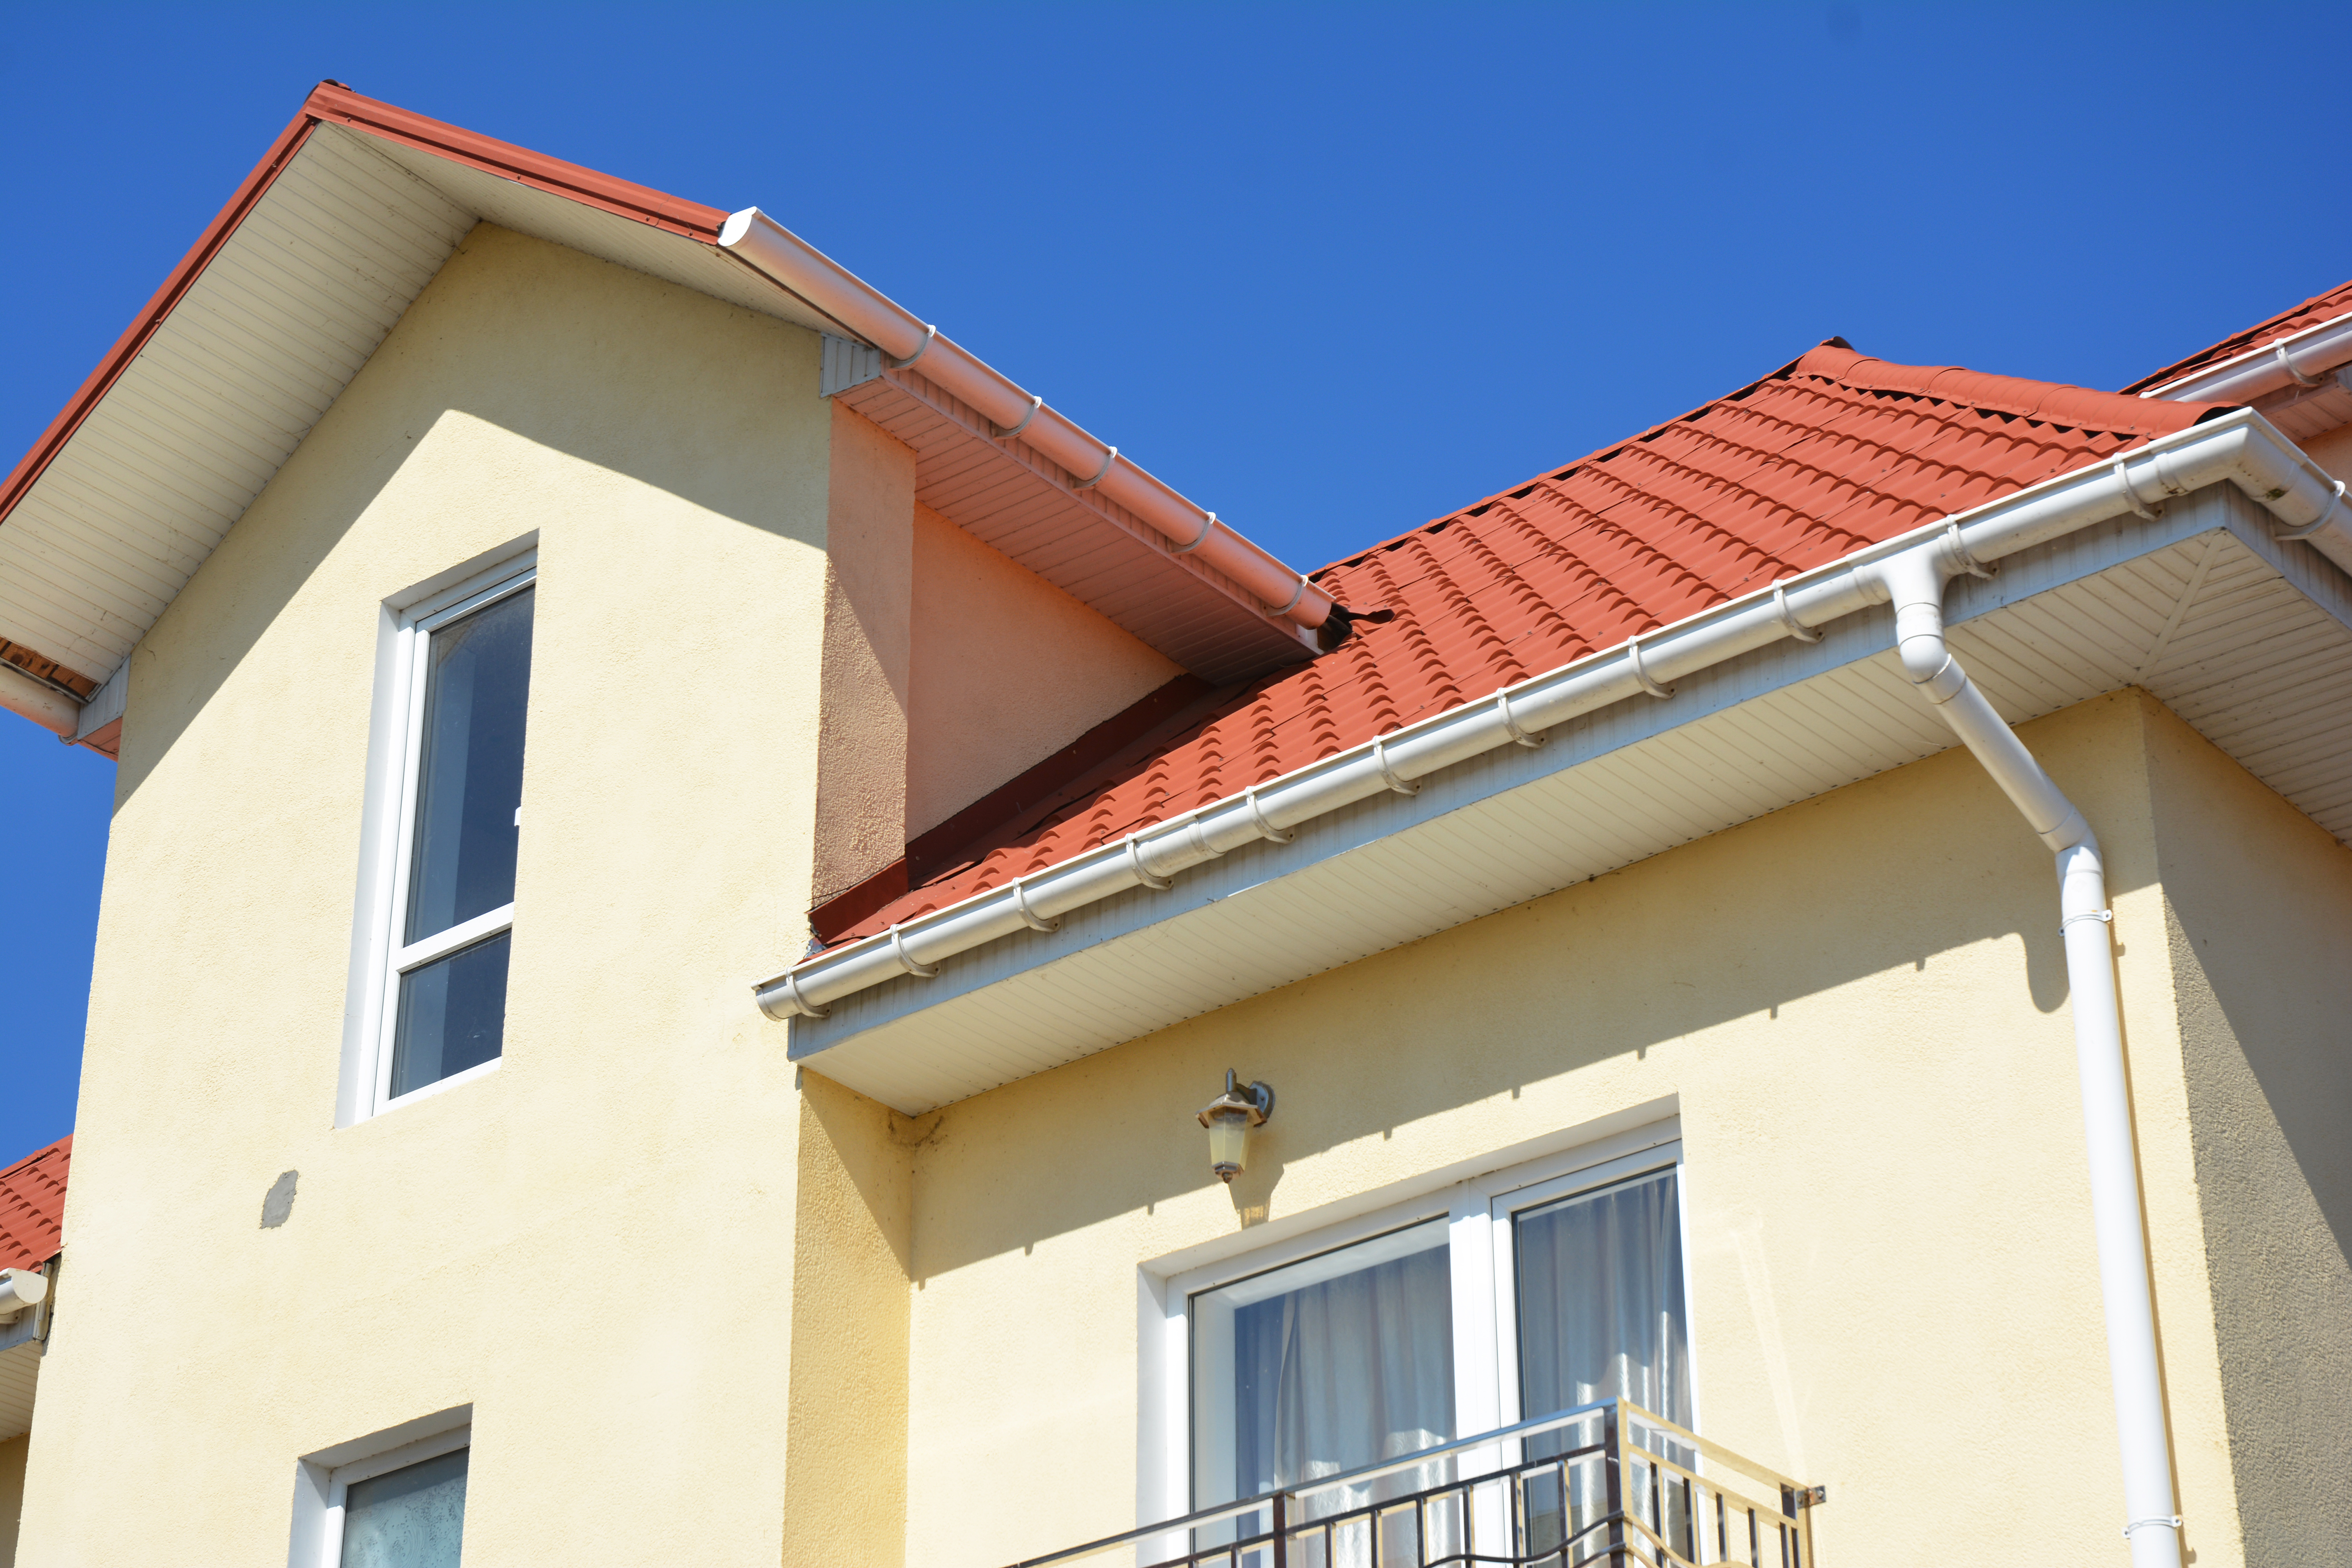 Learn More About Your Roof